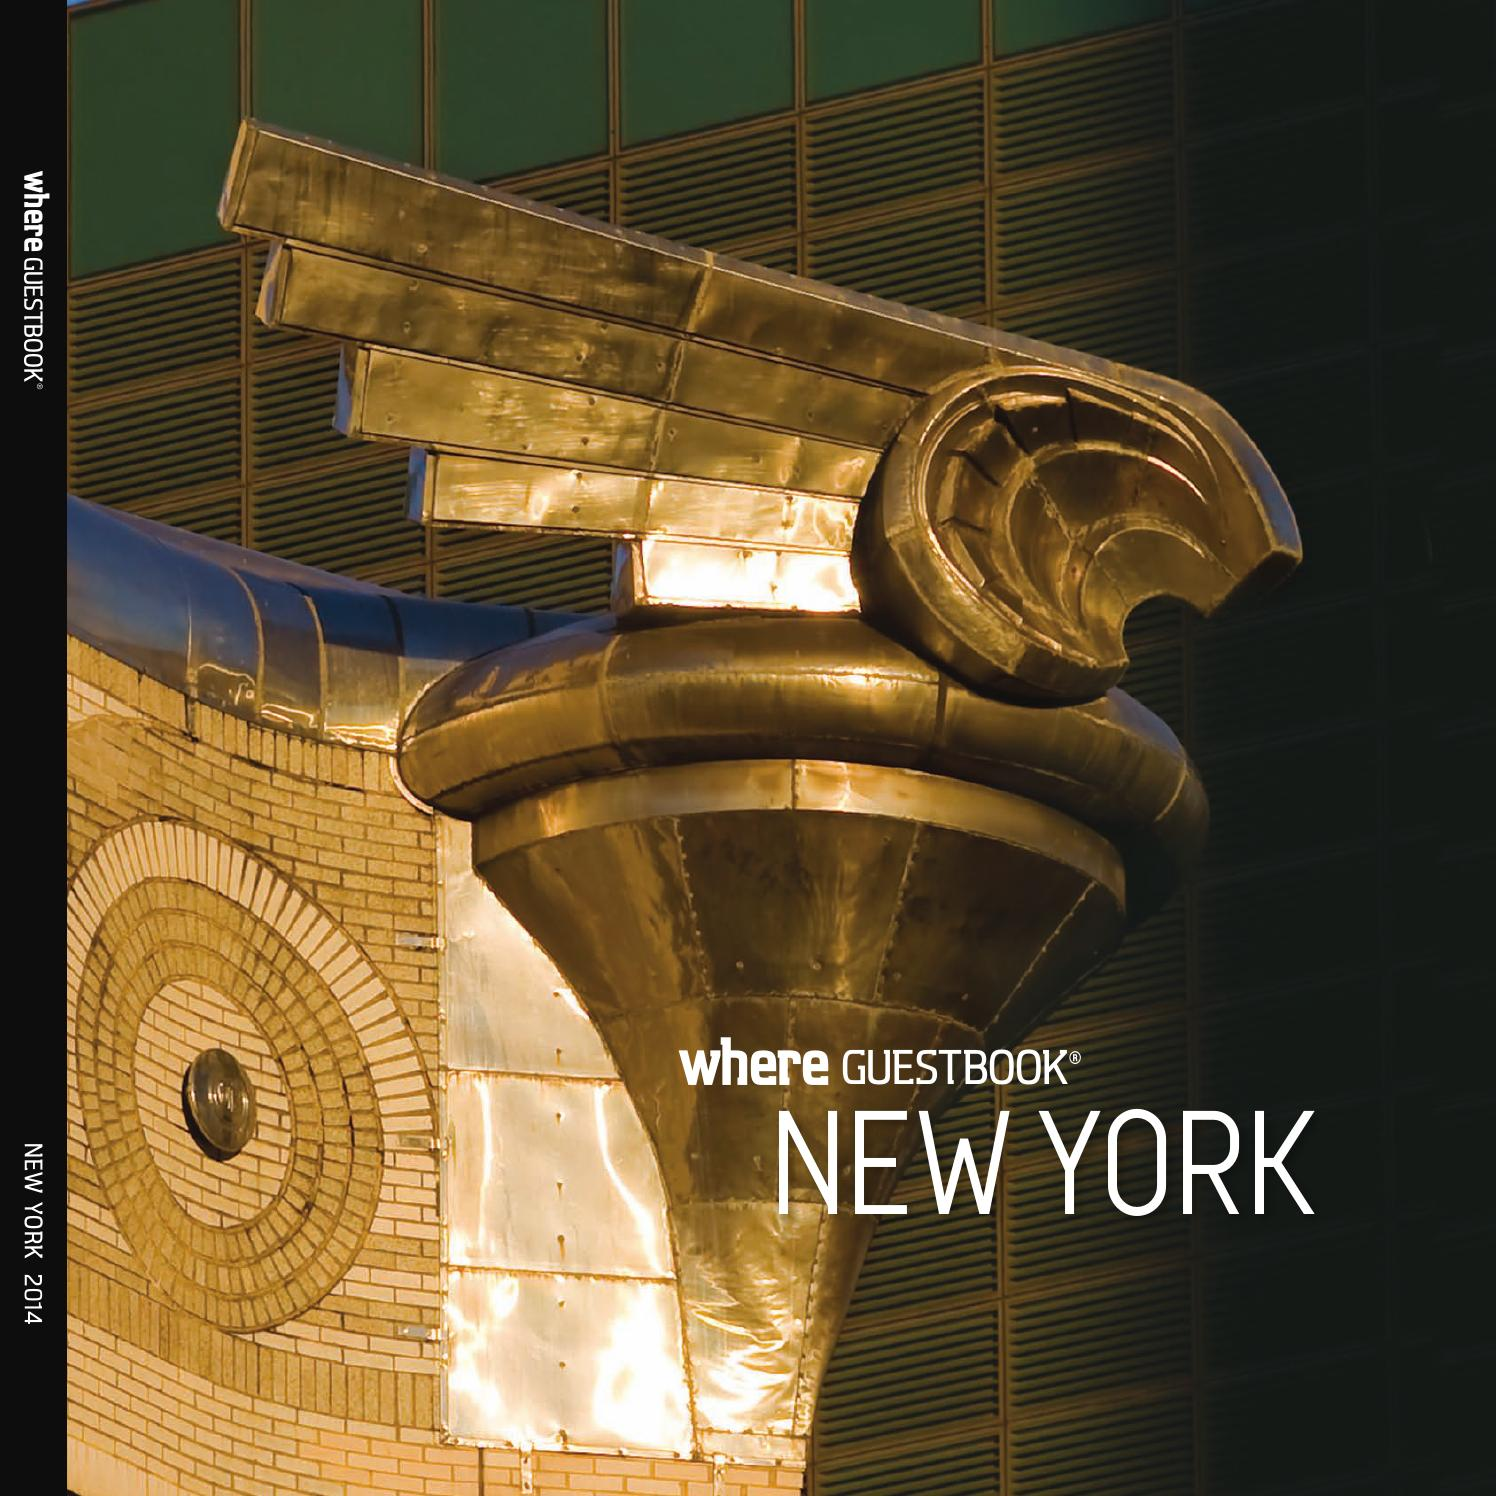 Edition Guestbook 2014 New Where York roCBxed